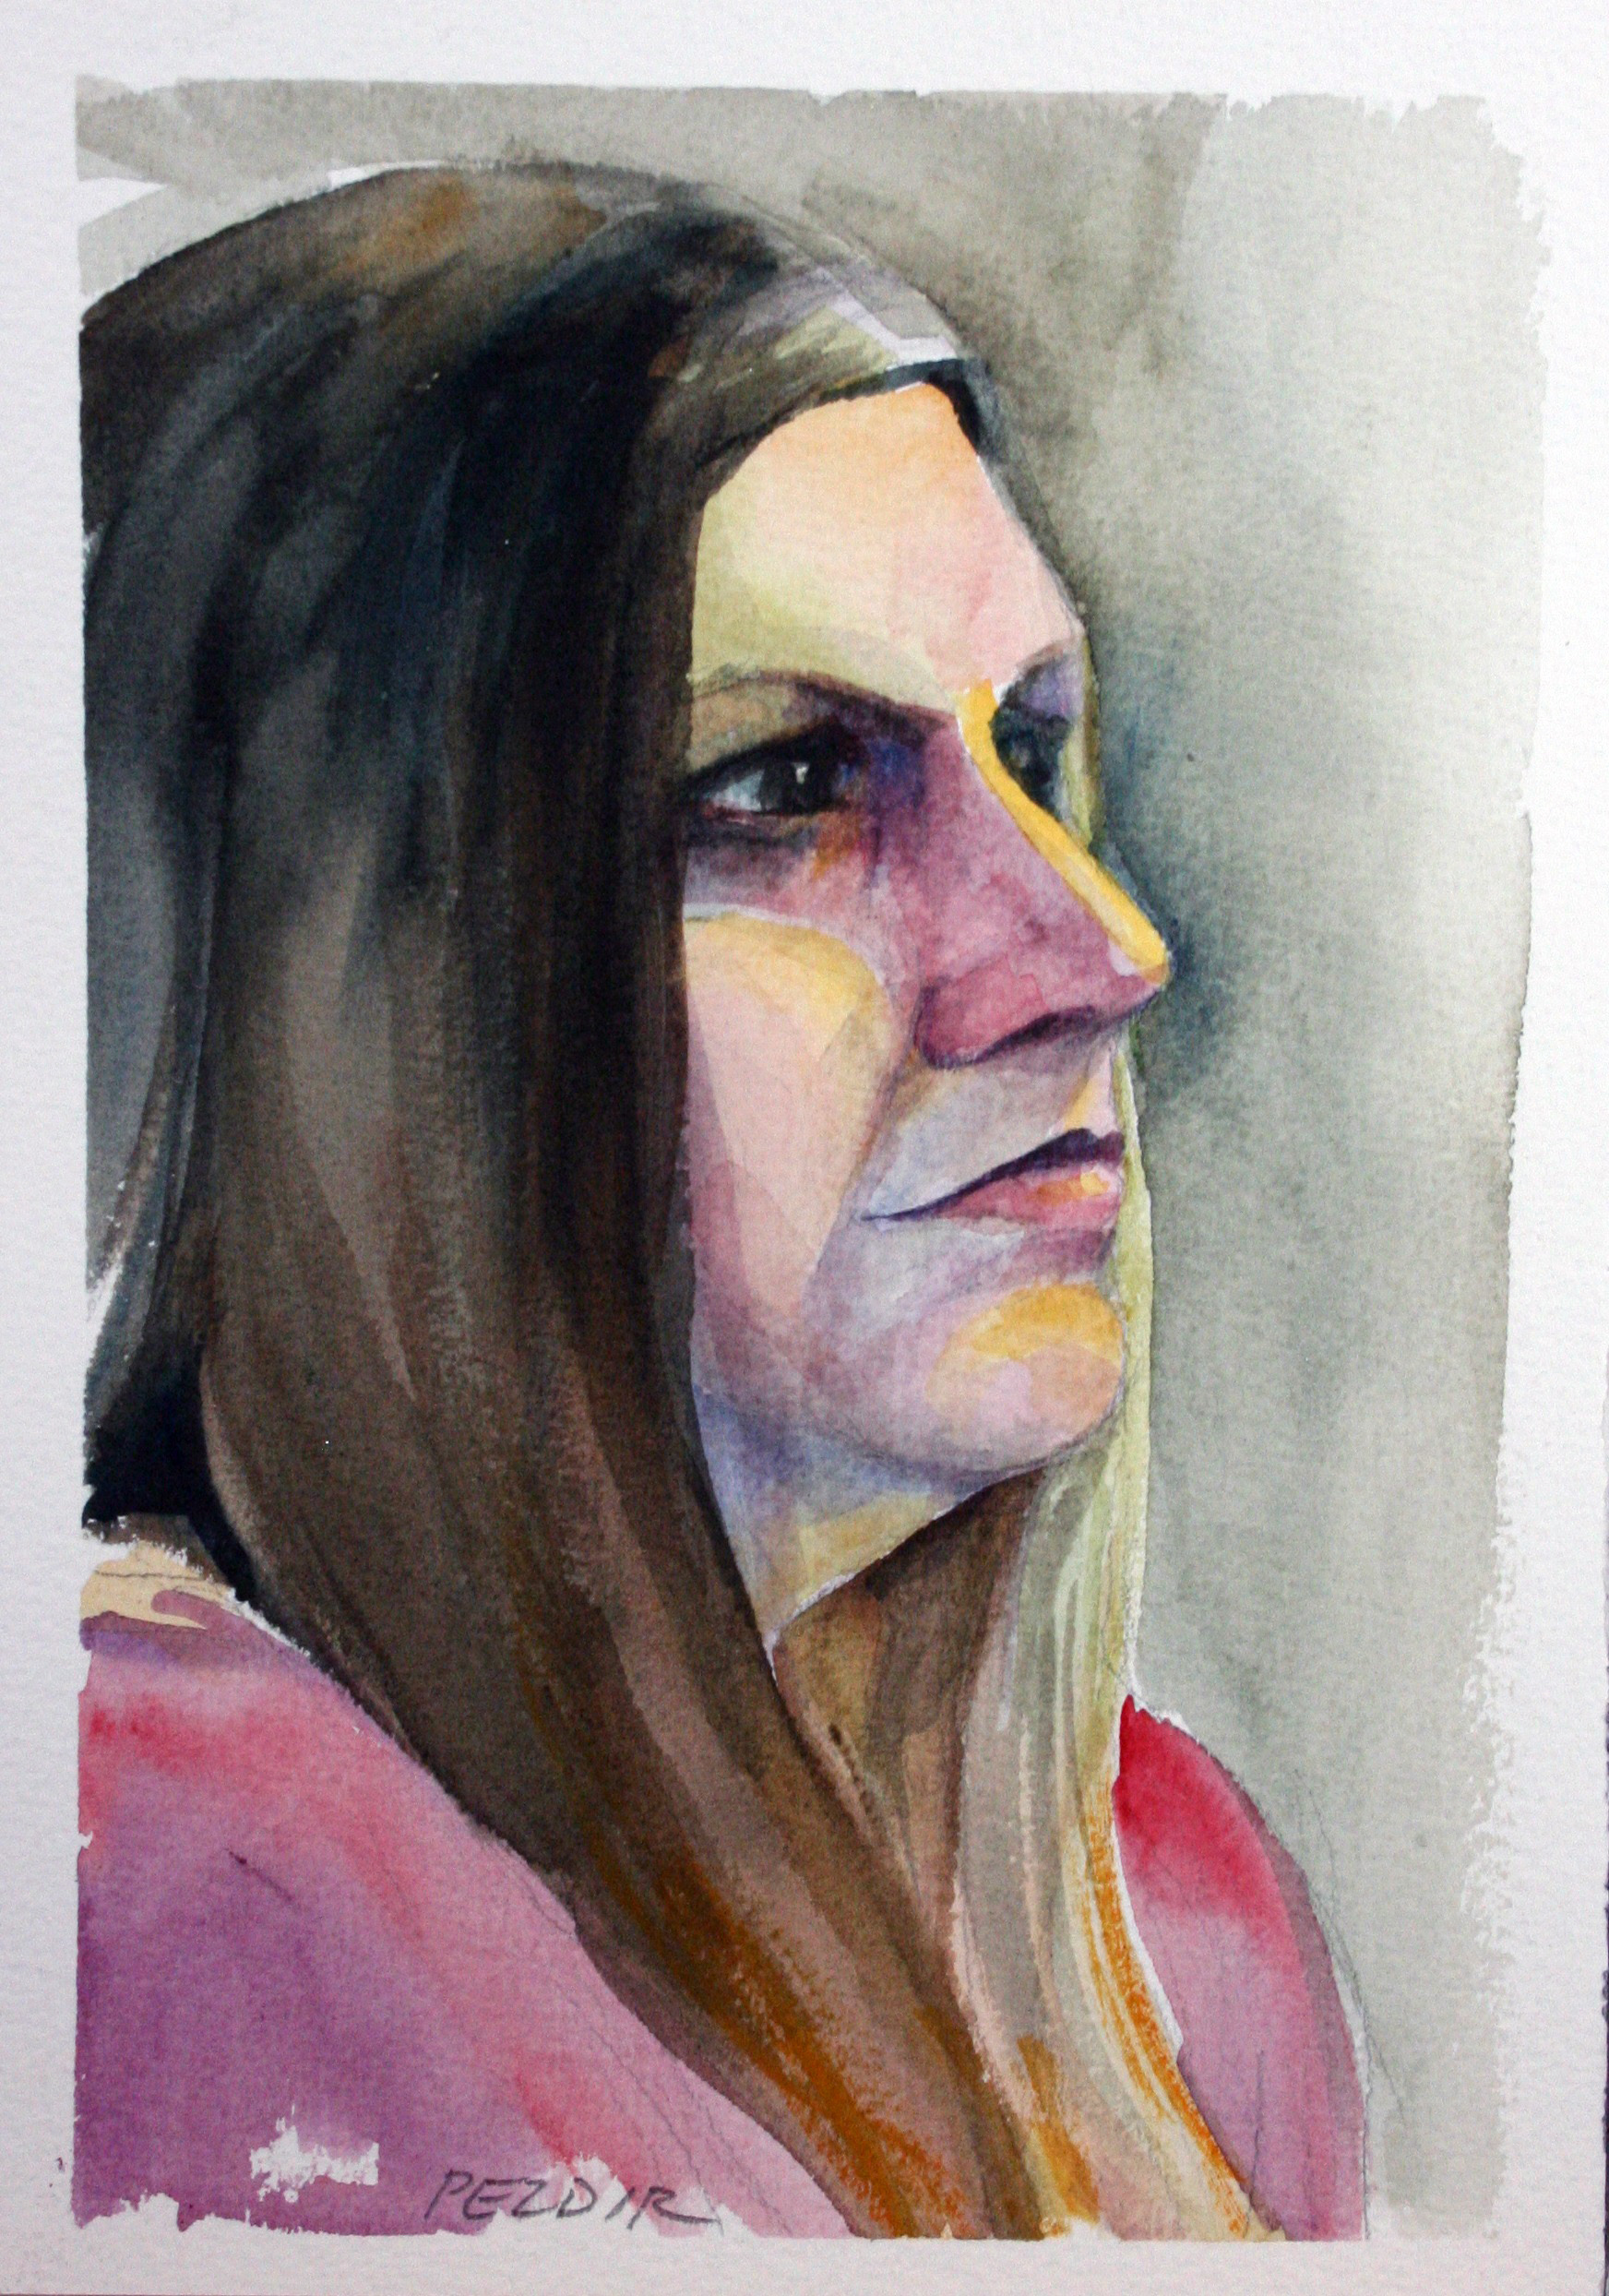 Judy Pezdir did this watercolor drawing.